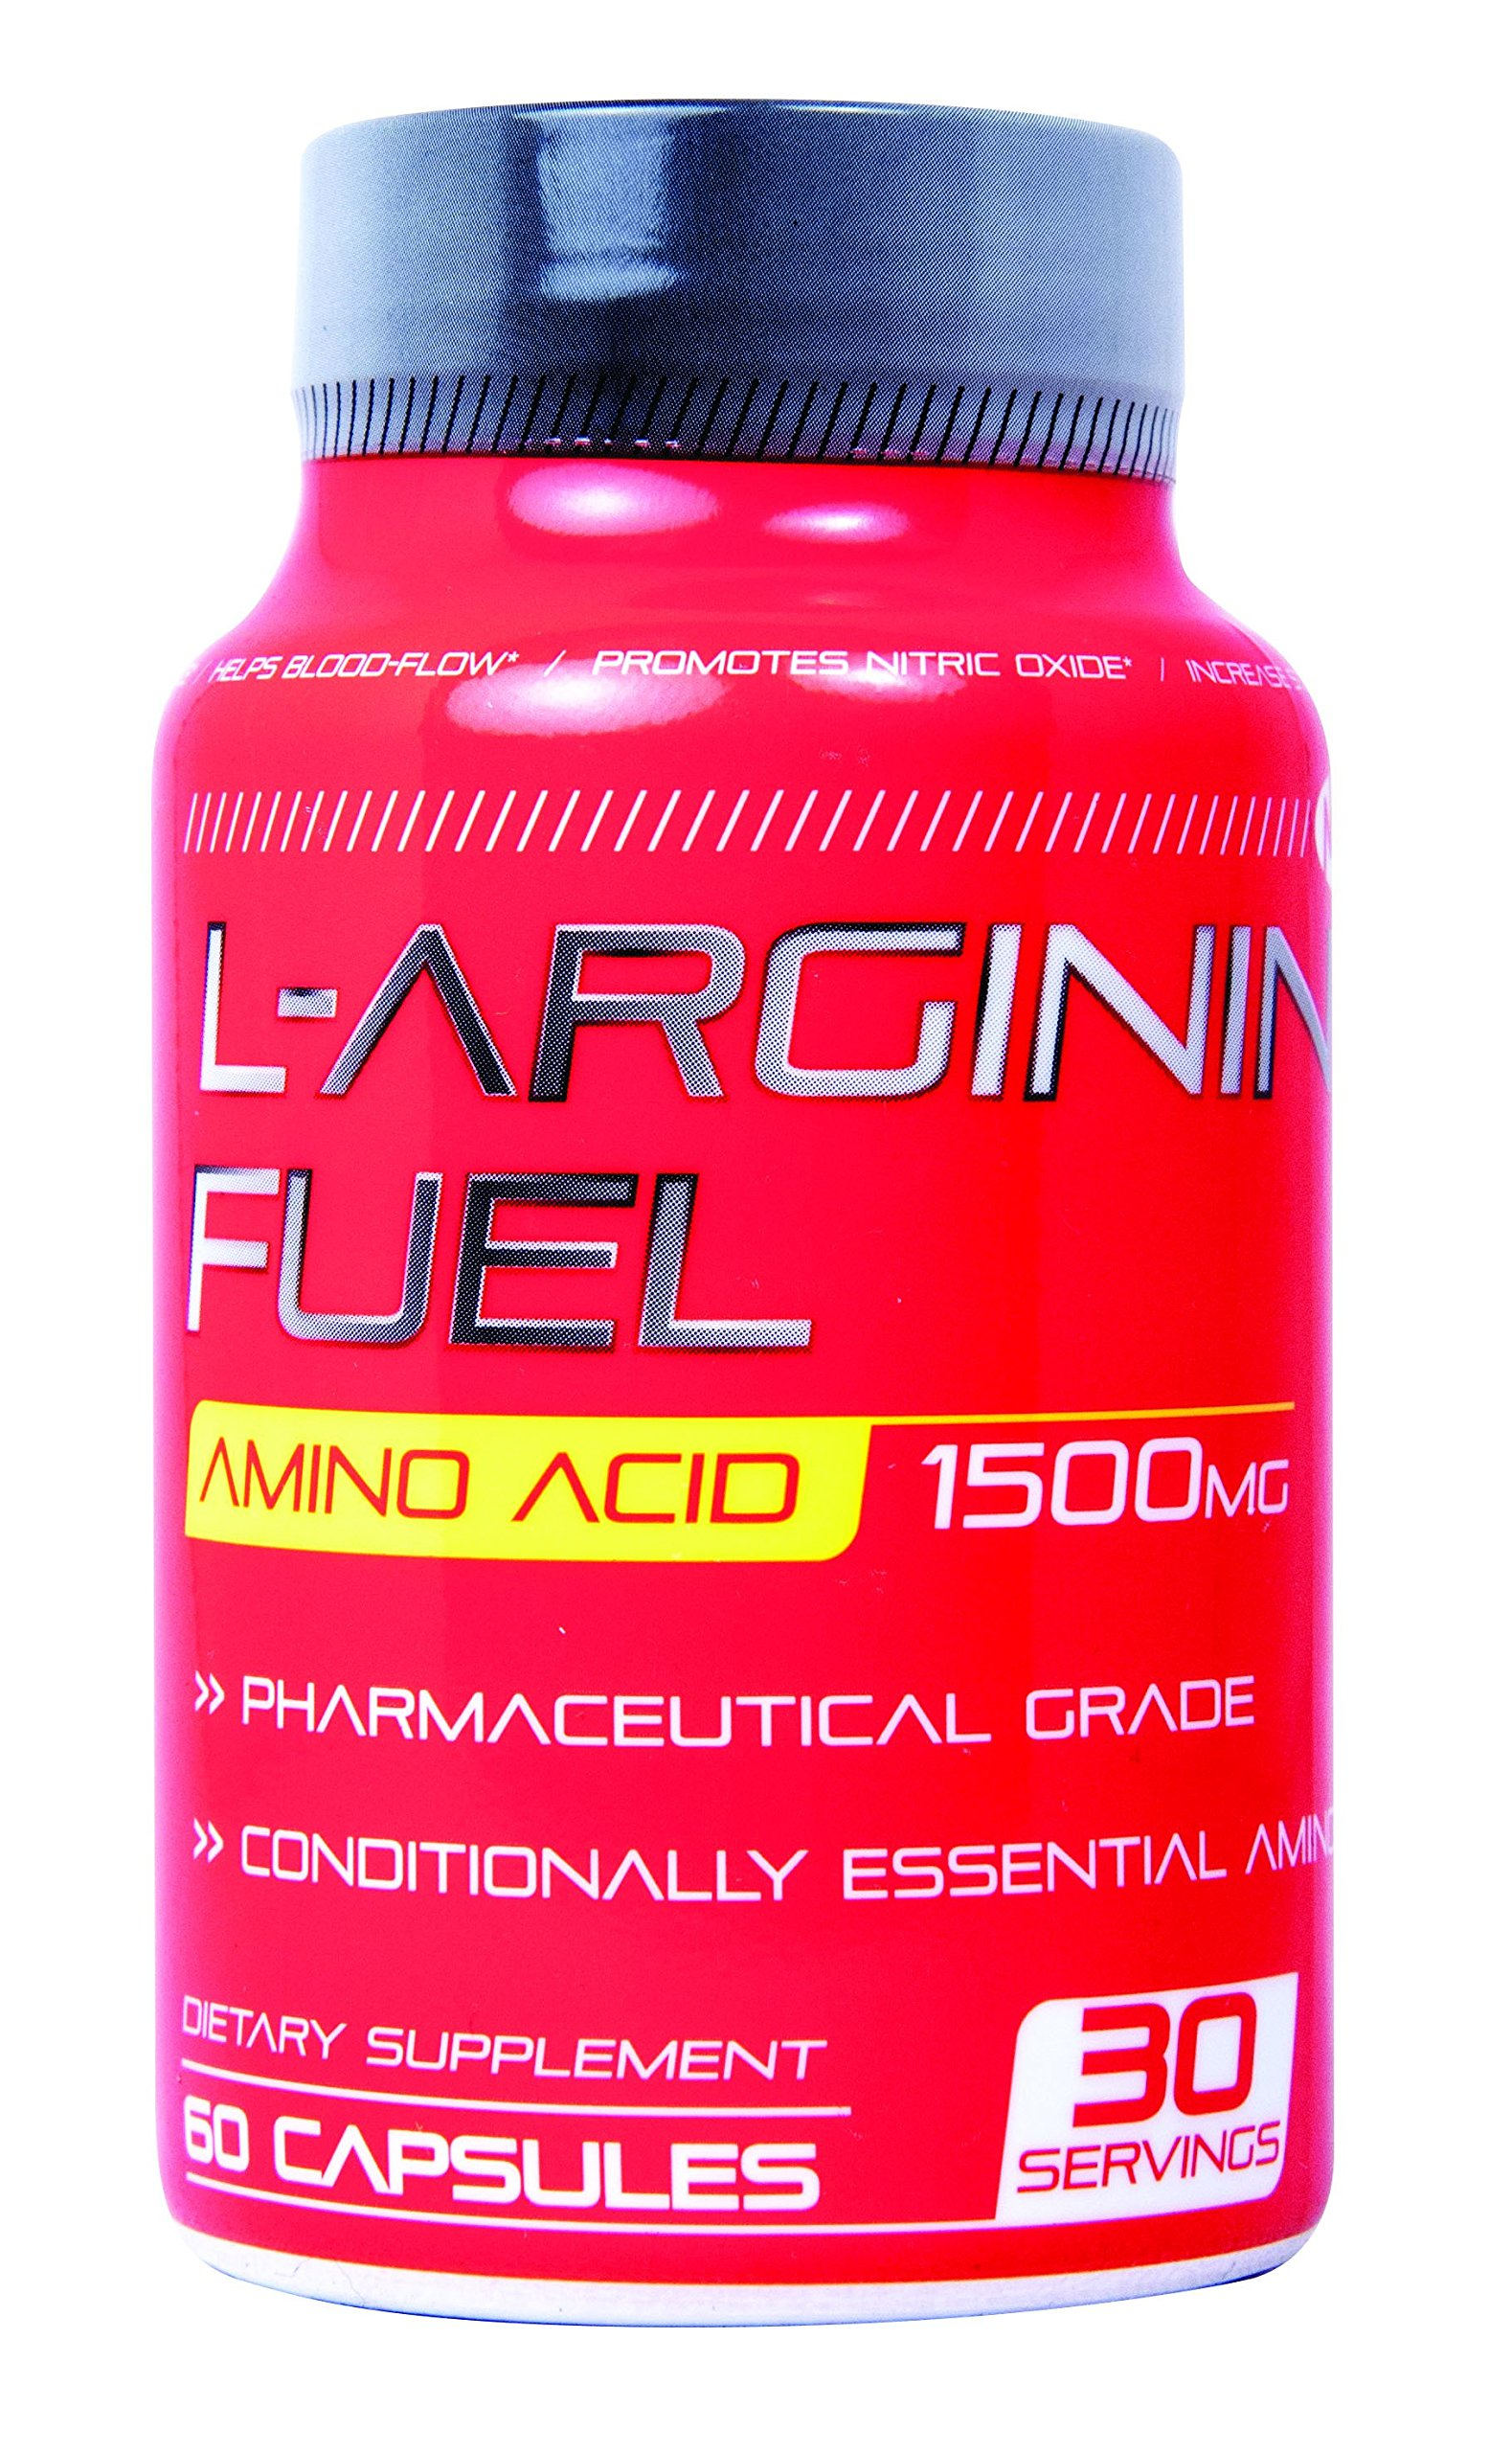 N.1 L-arginine Fuel Extra Strength L Arginine - 1500mg Nitric Oxide Booster